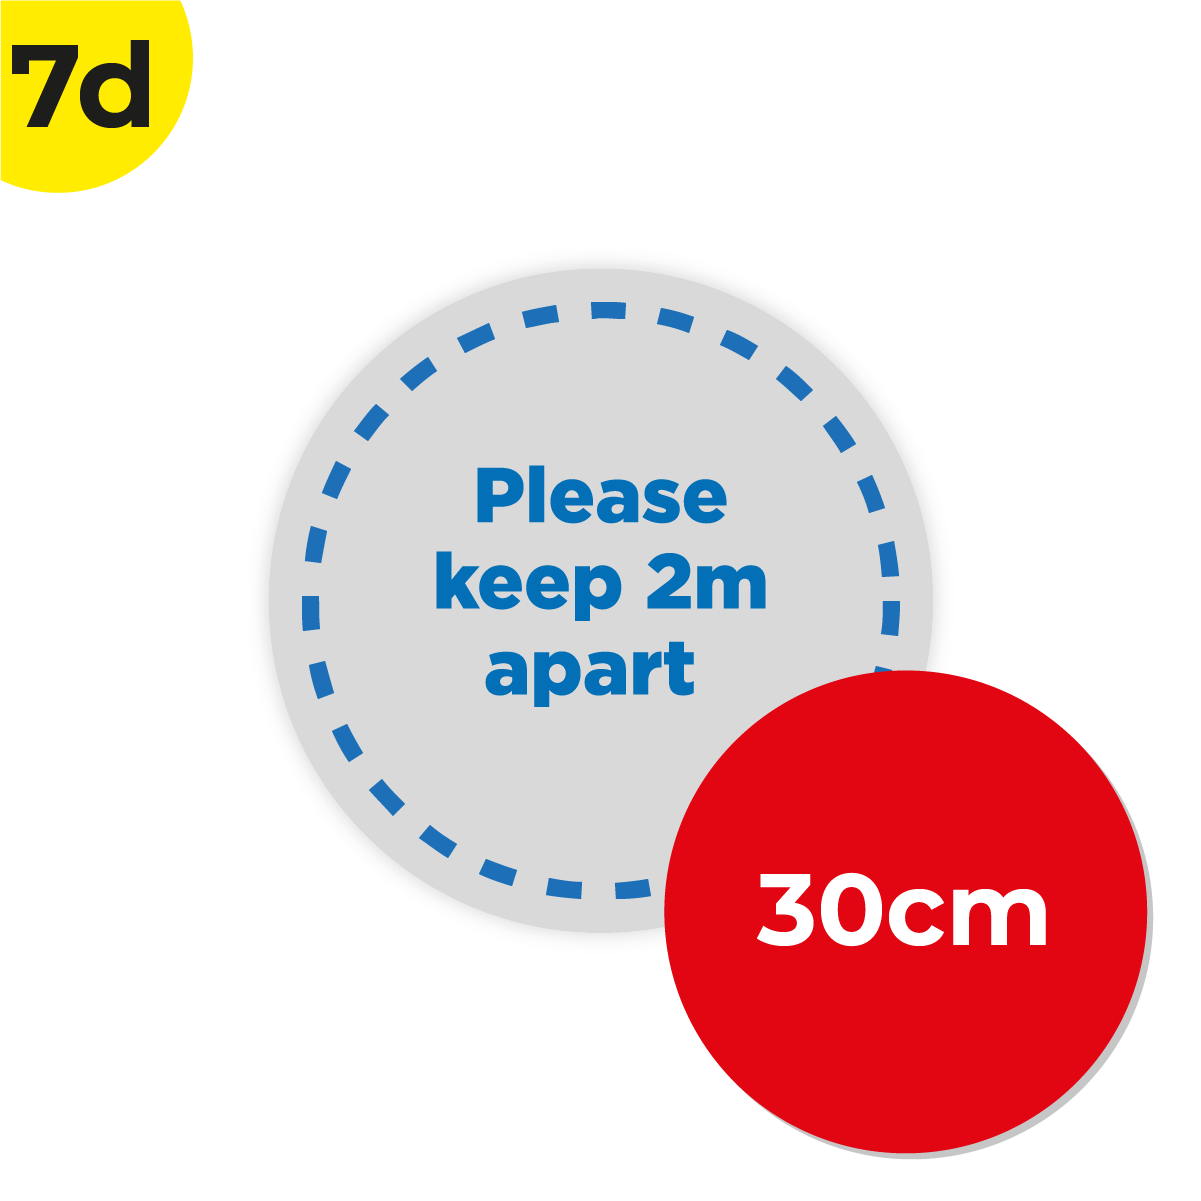 7D 30cm Circle Floor Graphic Social Distance Sign DARK BLUE 30cm Coronavirus (COVID-19)